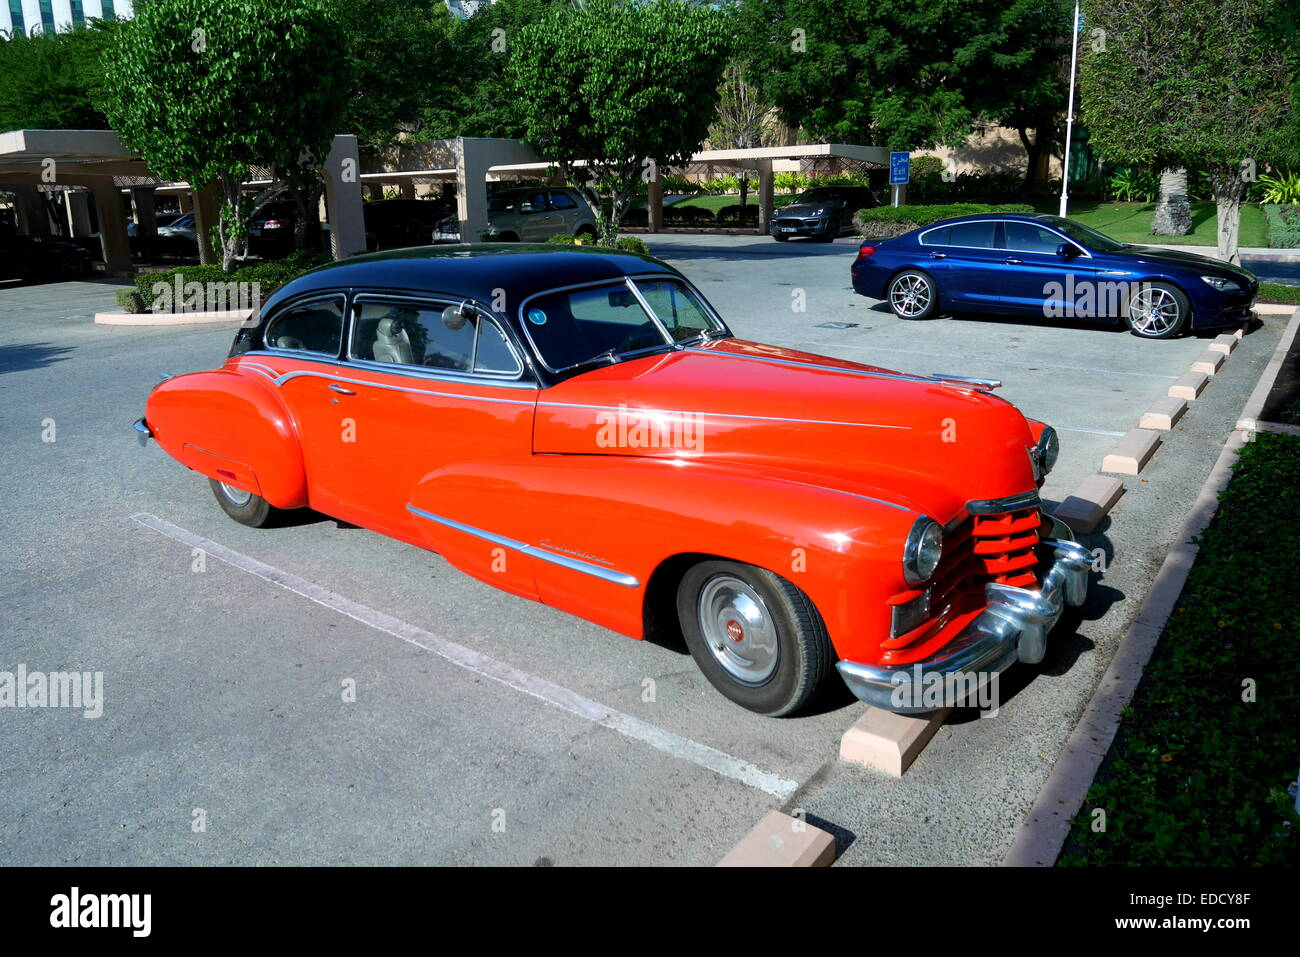 Cadillac 62 series with BMW behind in the car park of the Ritz Carlton Hotel, Kingdom of Bahrain - Stock Image